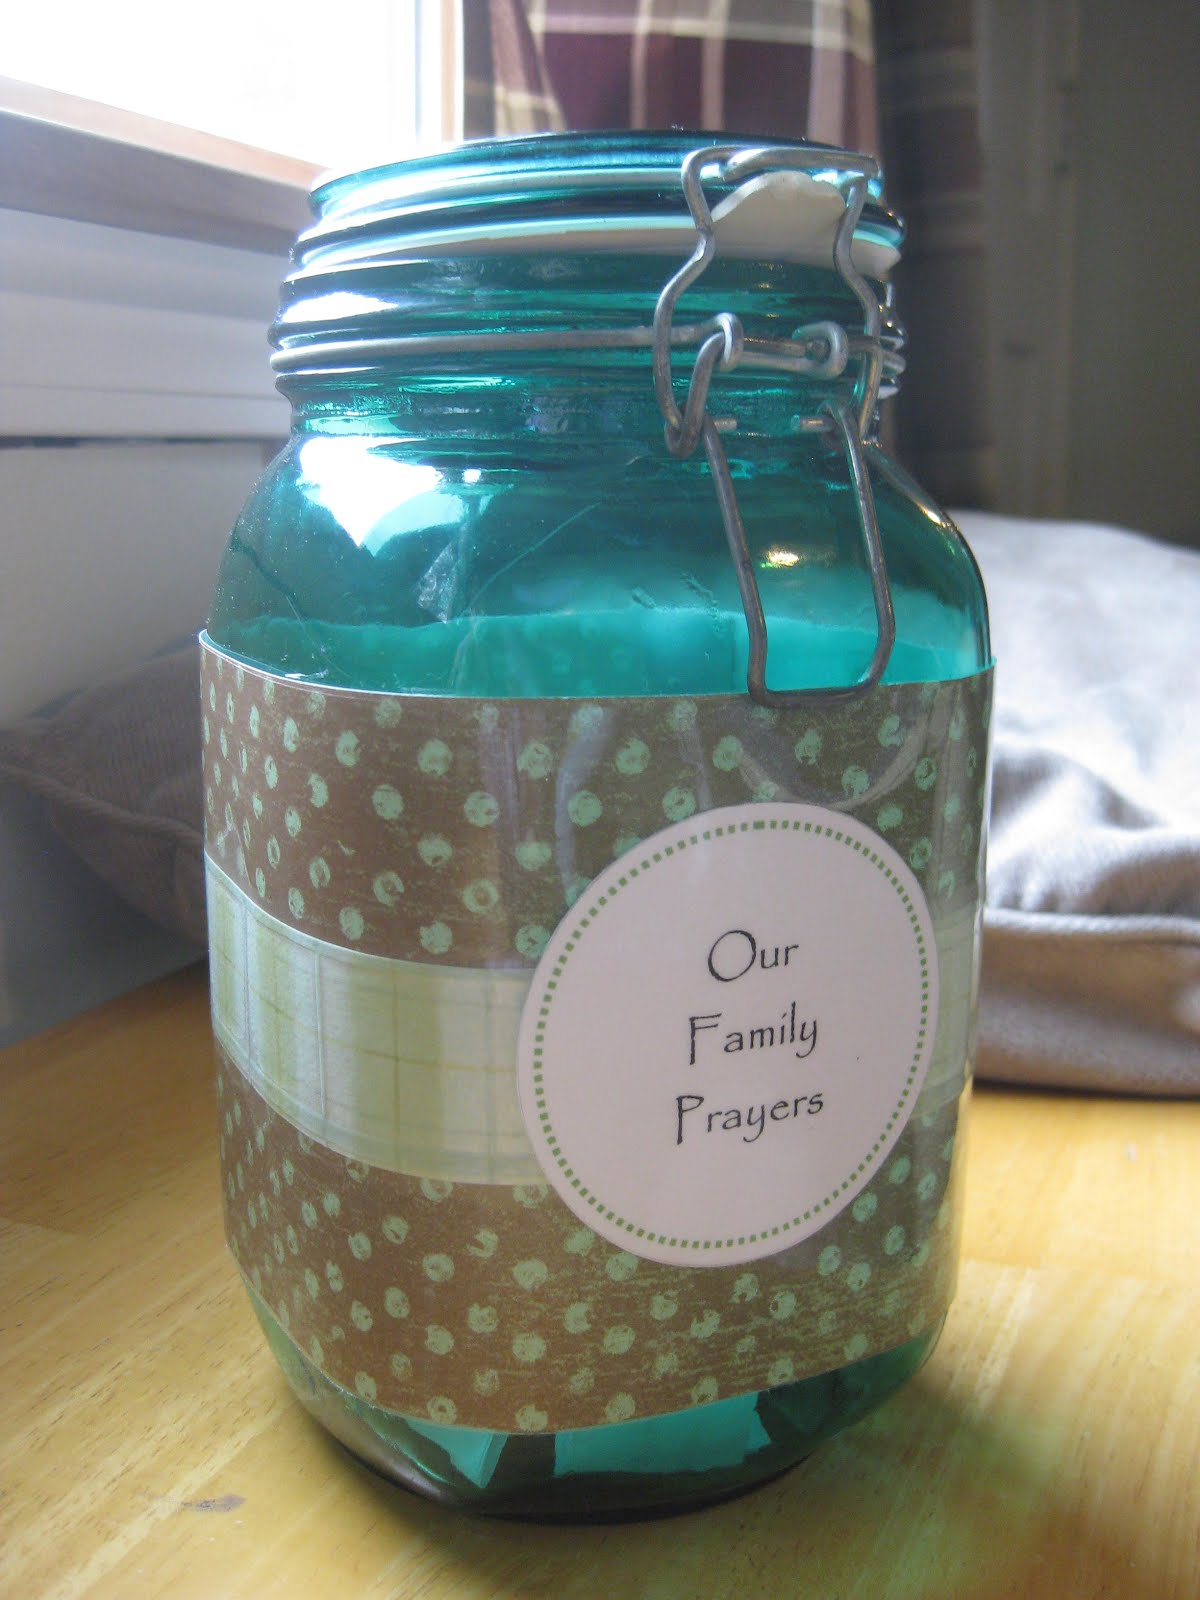 Wee Little Miracles Family Prayer Jar An Idea For Lent